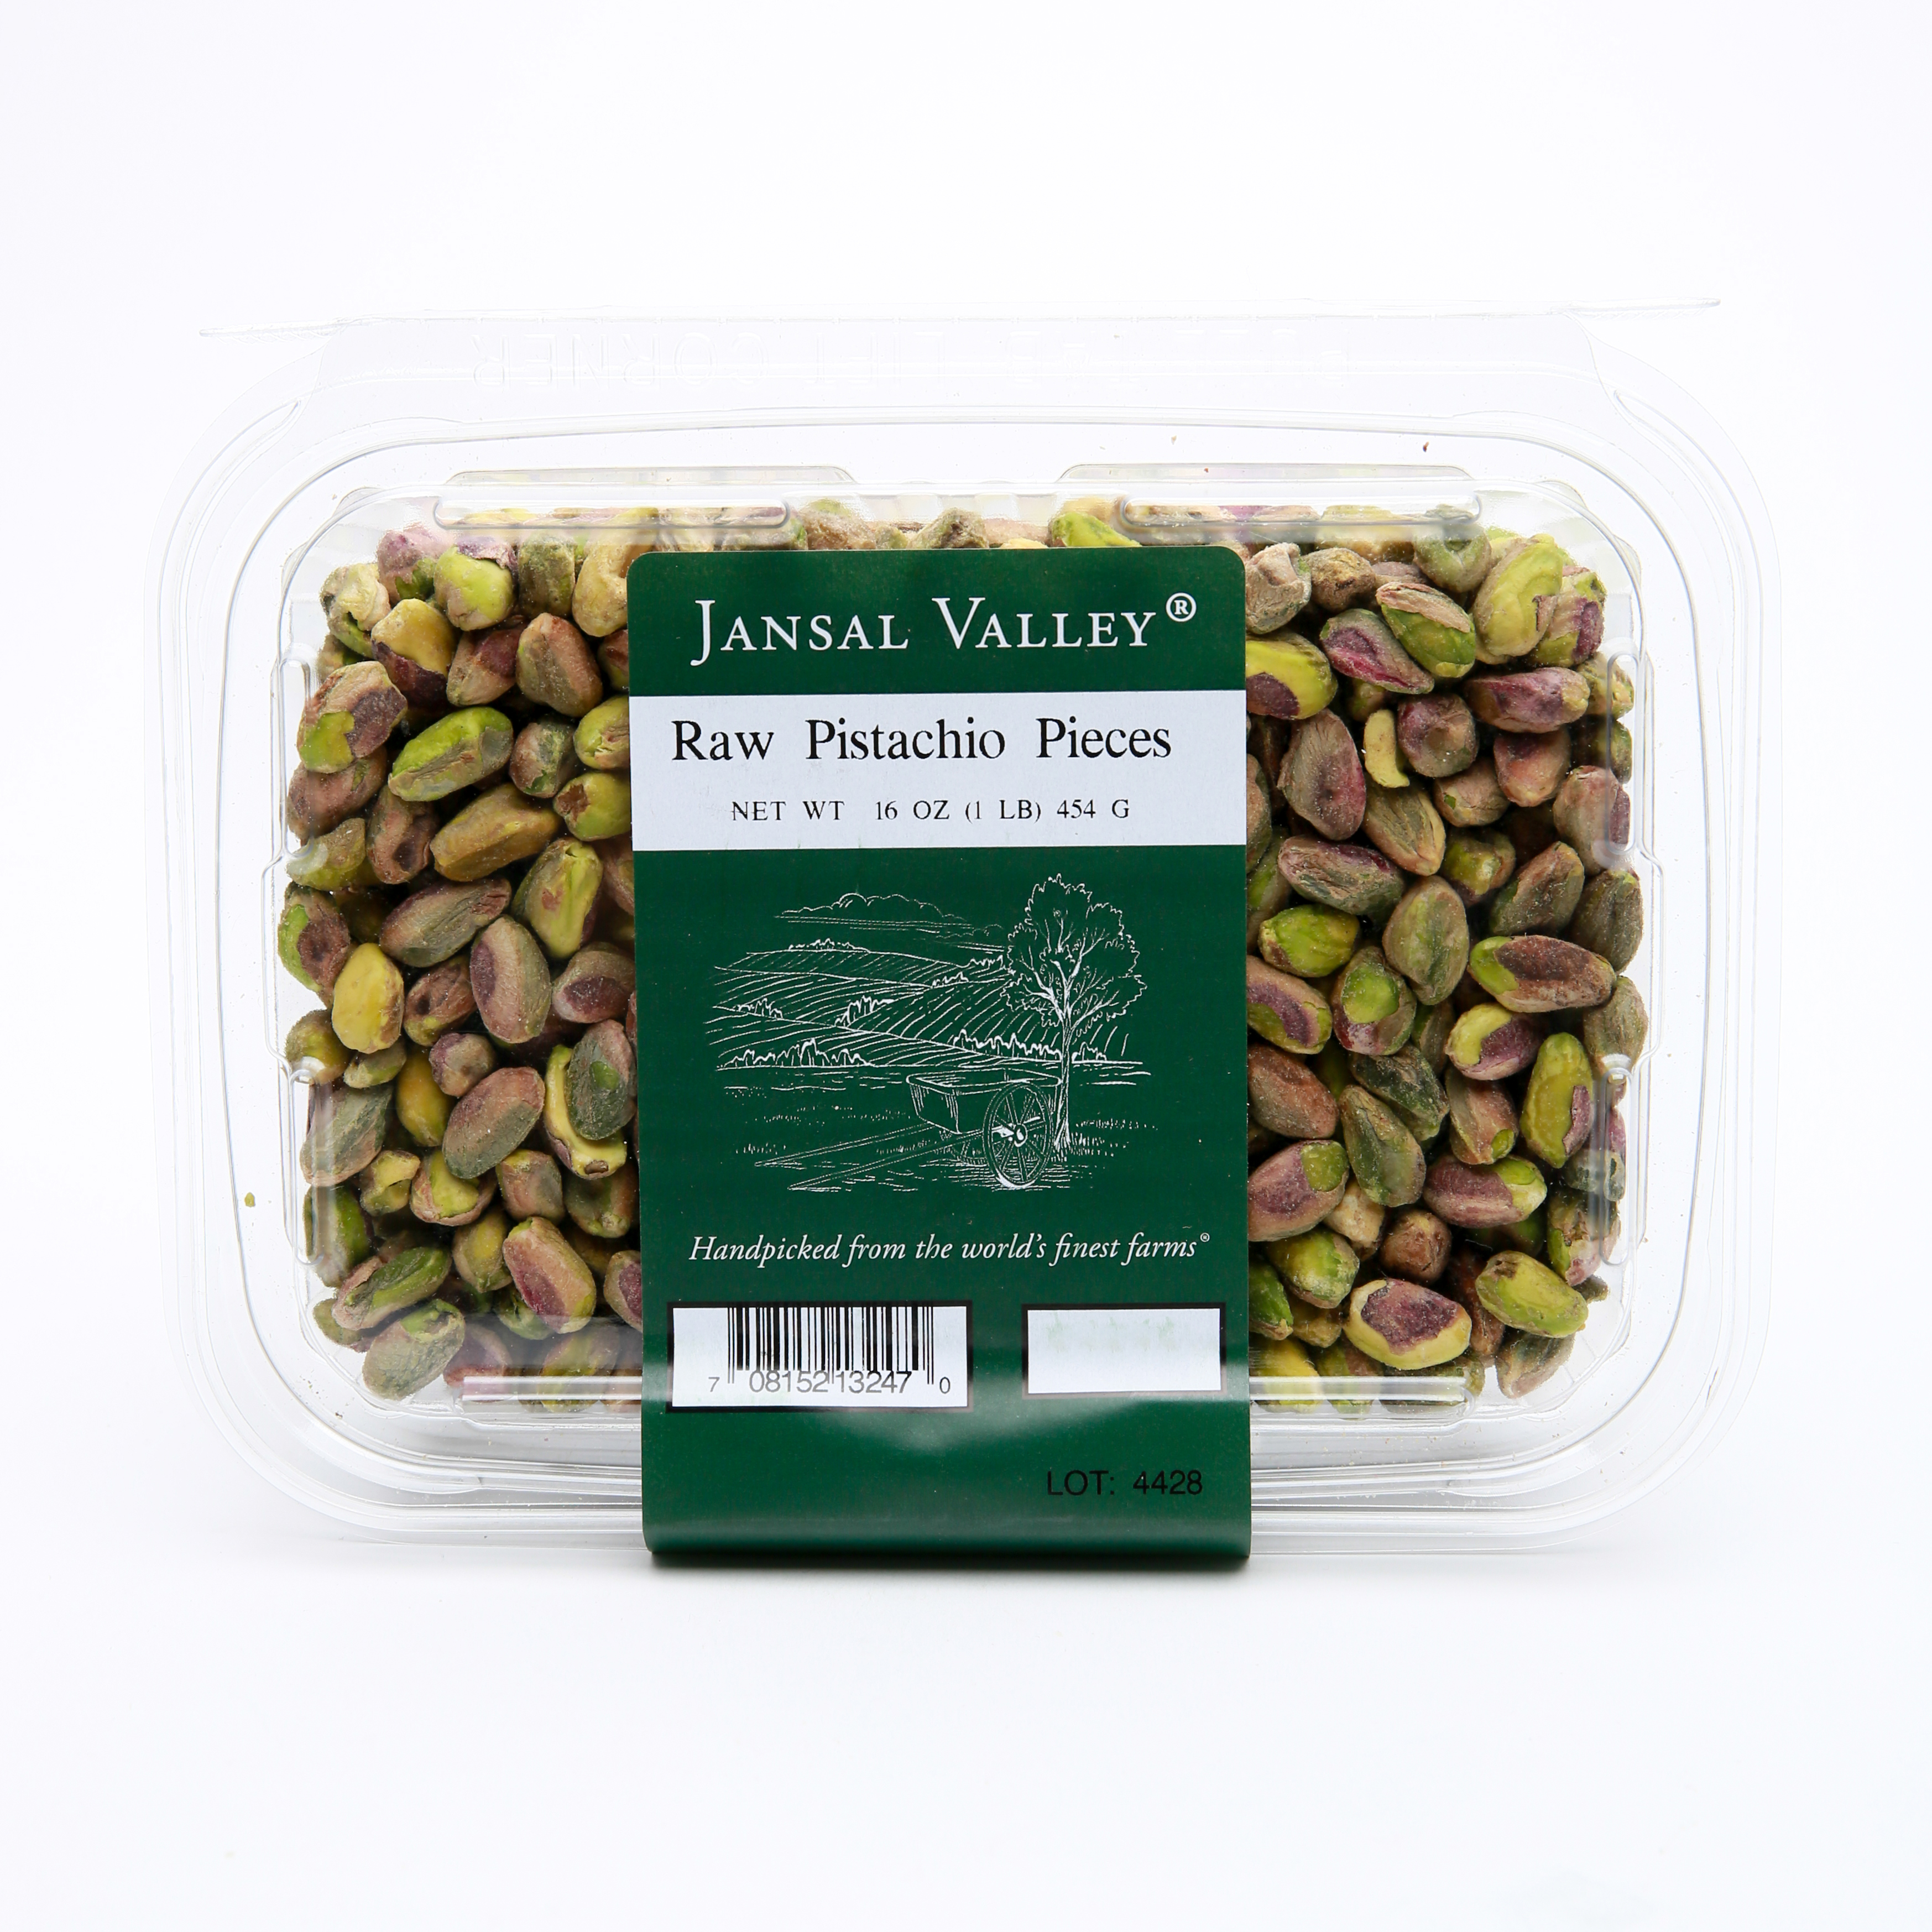 Raw Pistachio Pieces